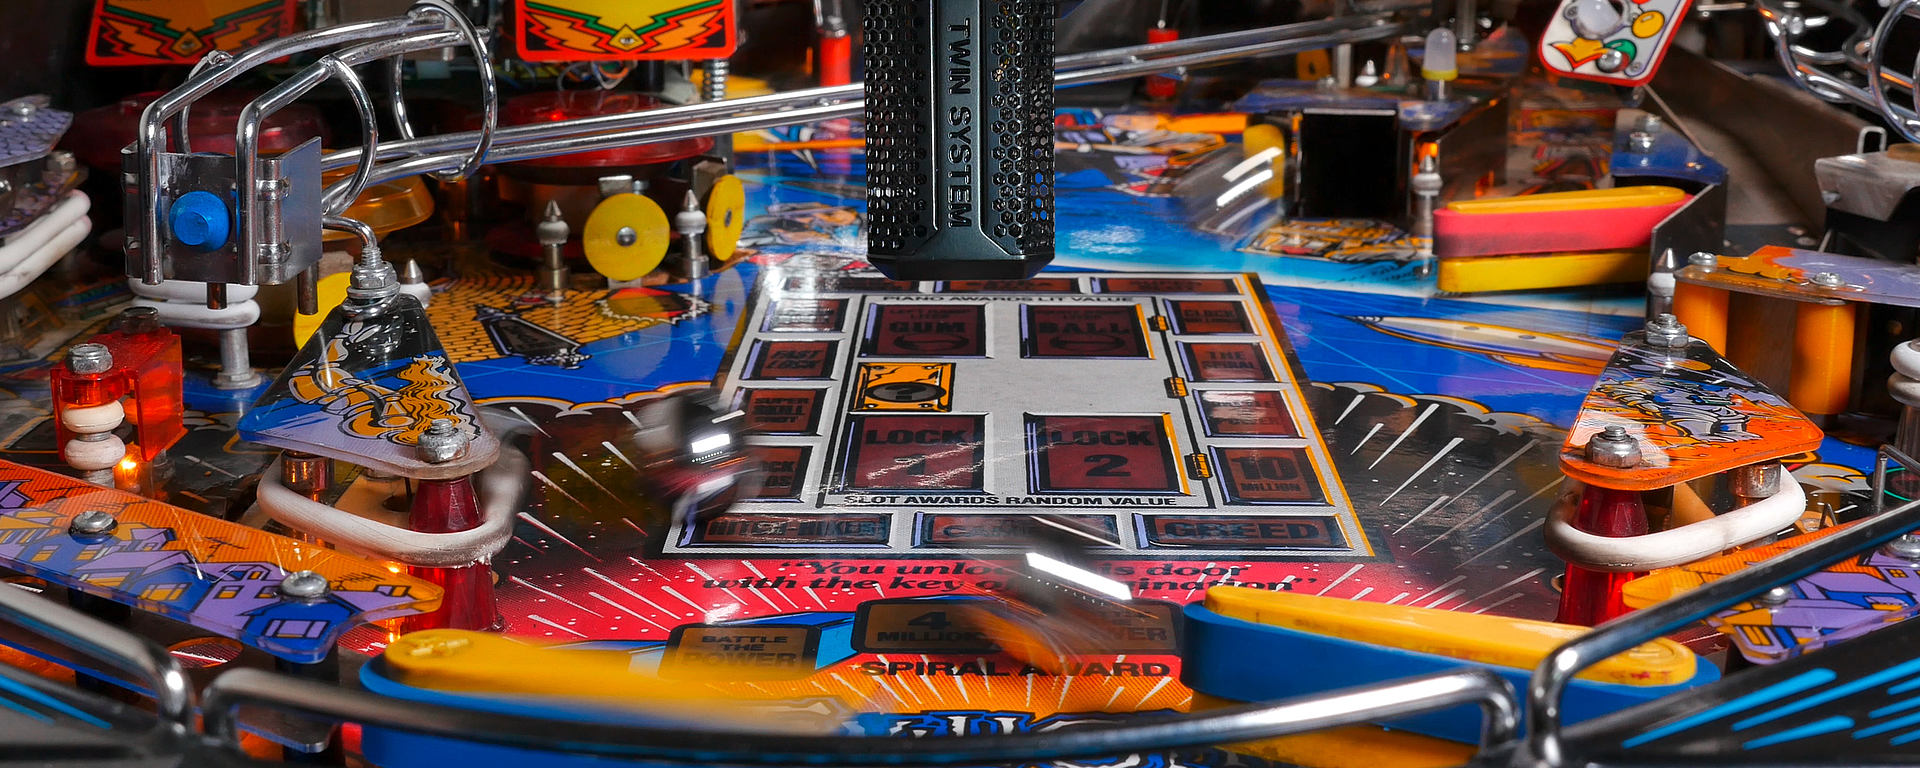 Recording in stereo the sounds of a pinball machine with the LCT 640 TS